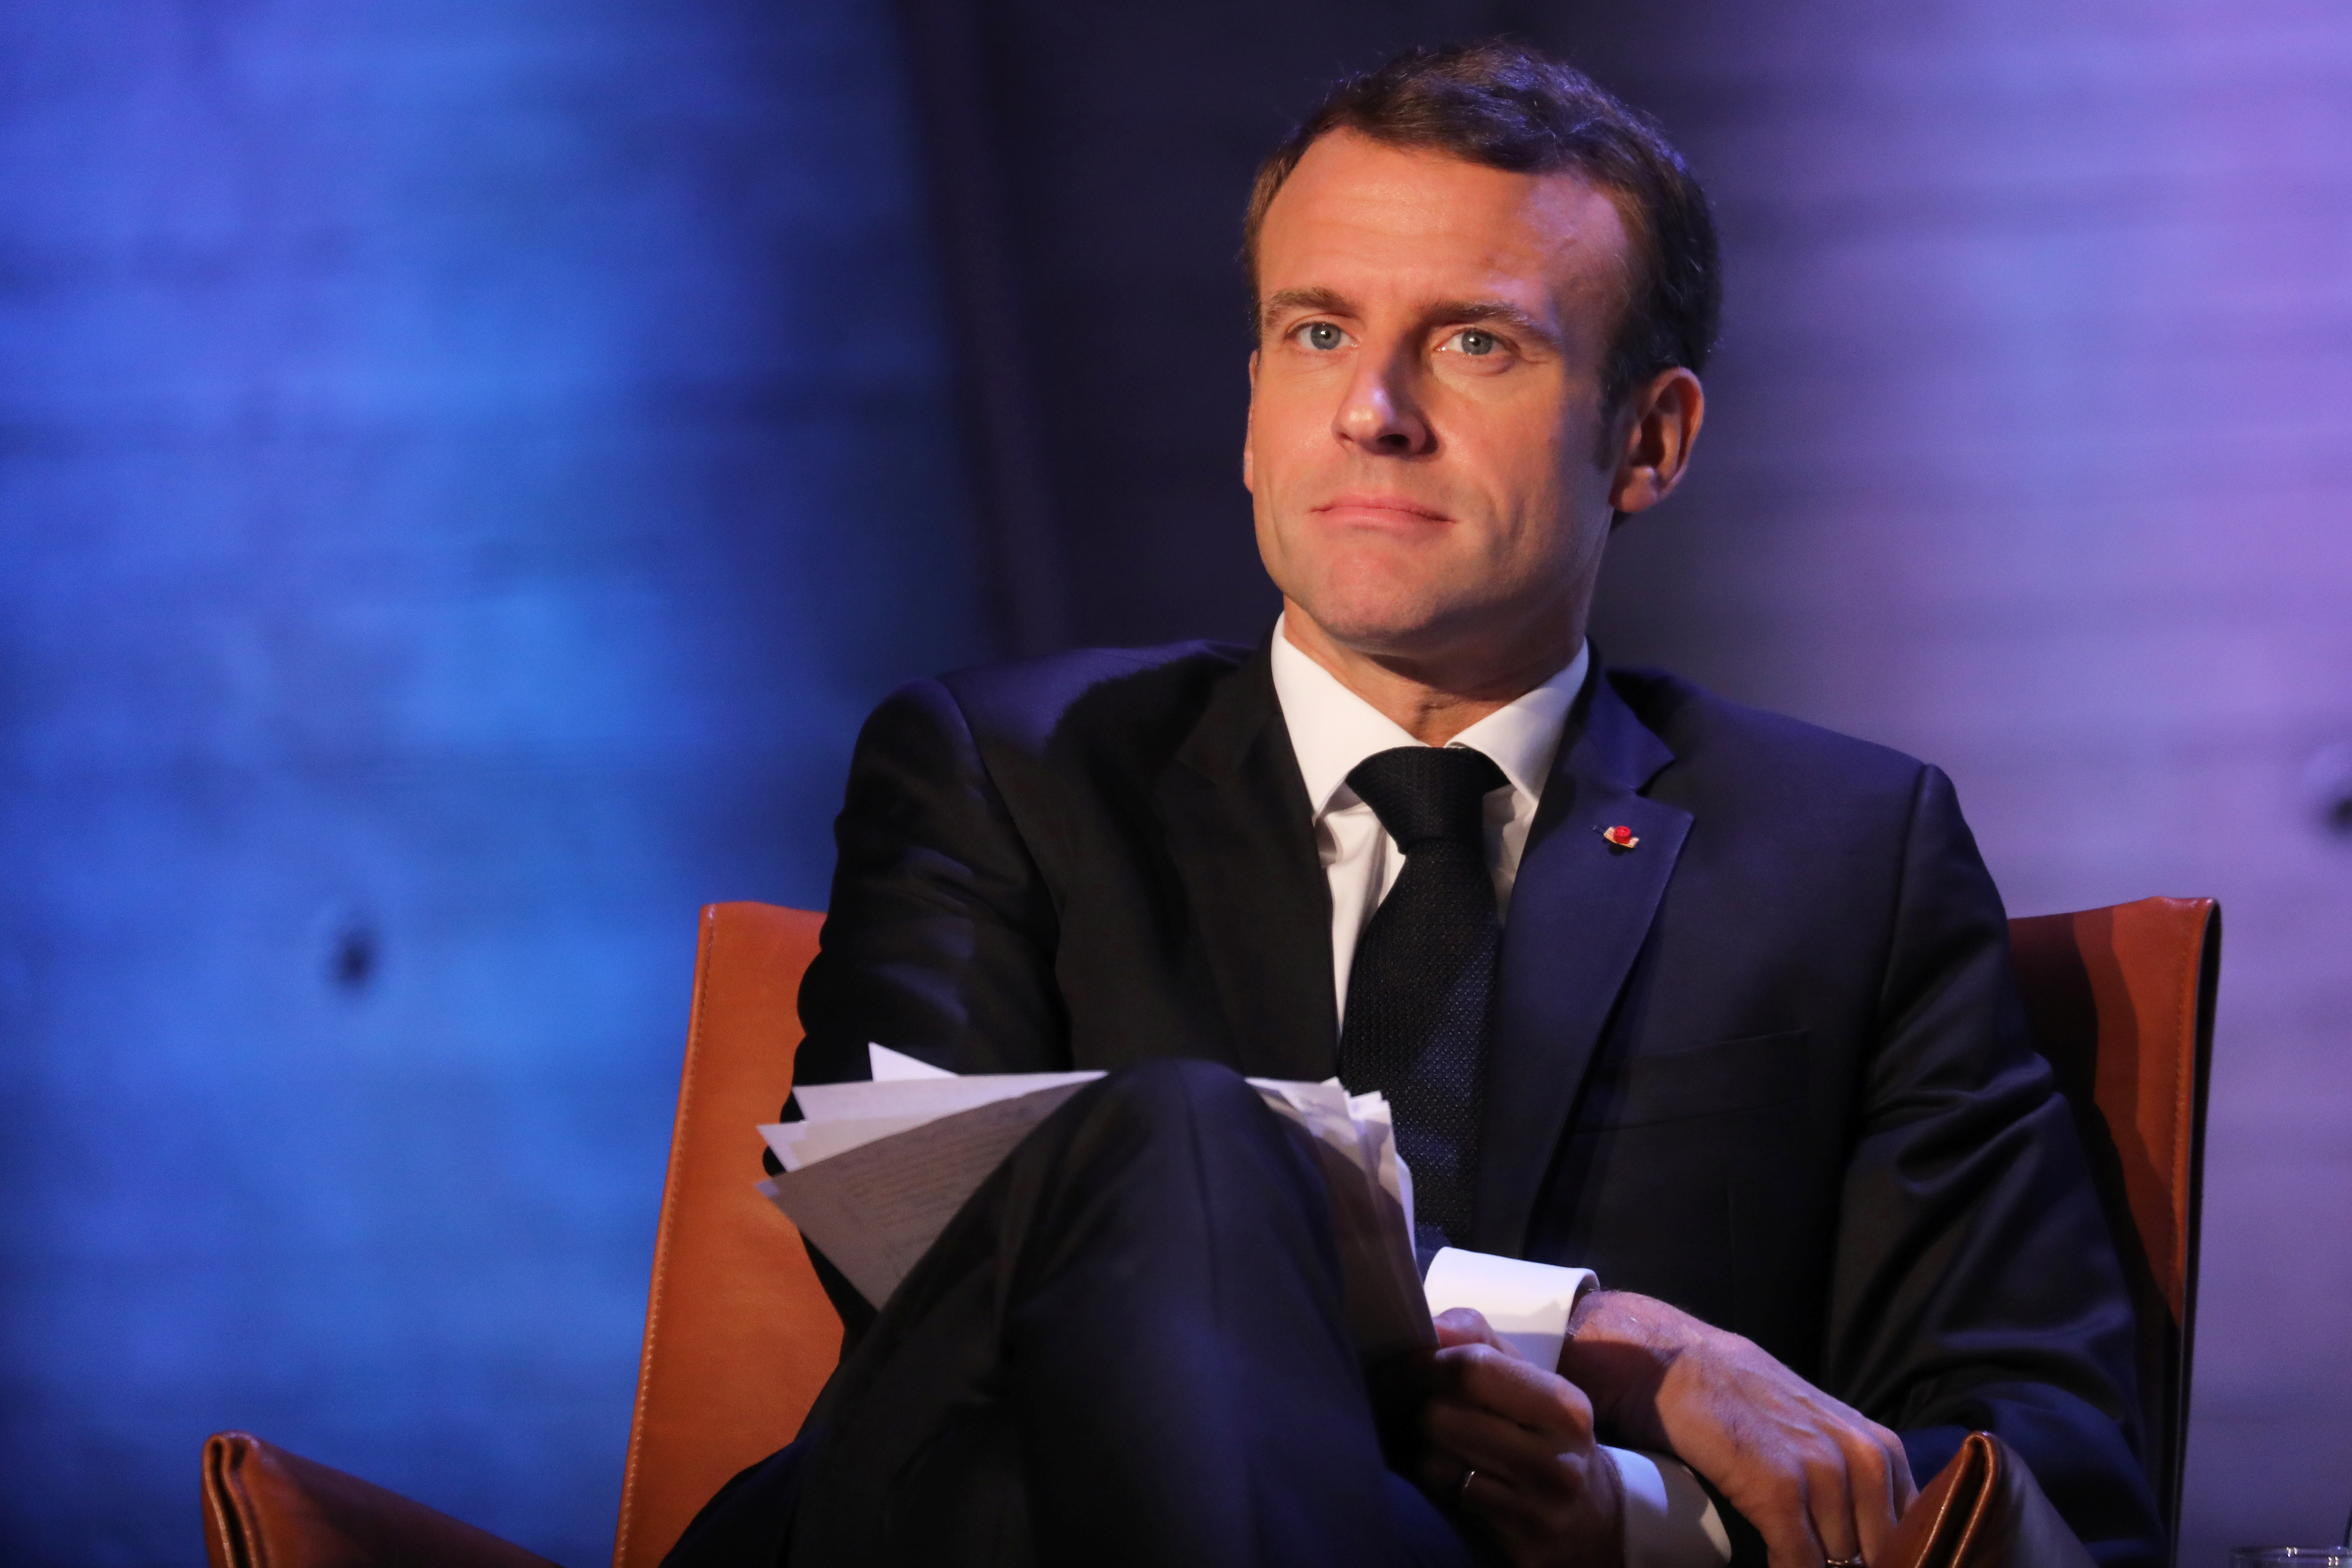 Macron says agreed with Trump to pressure oil producers